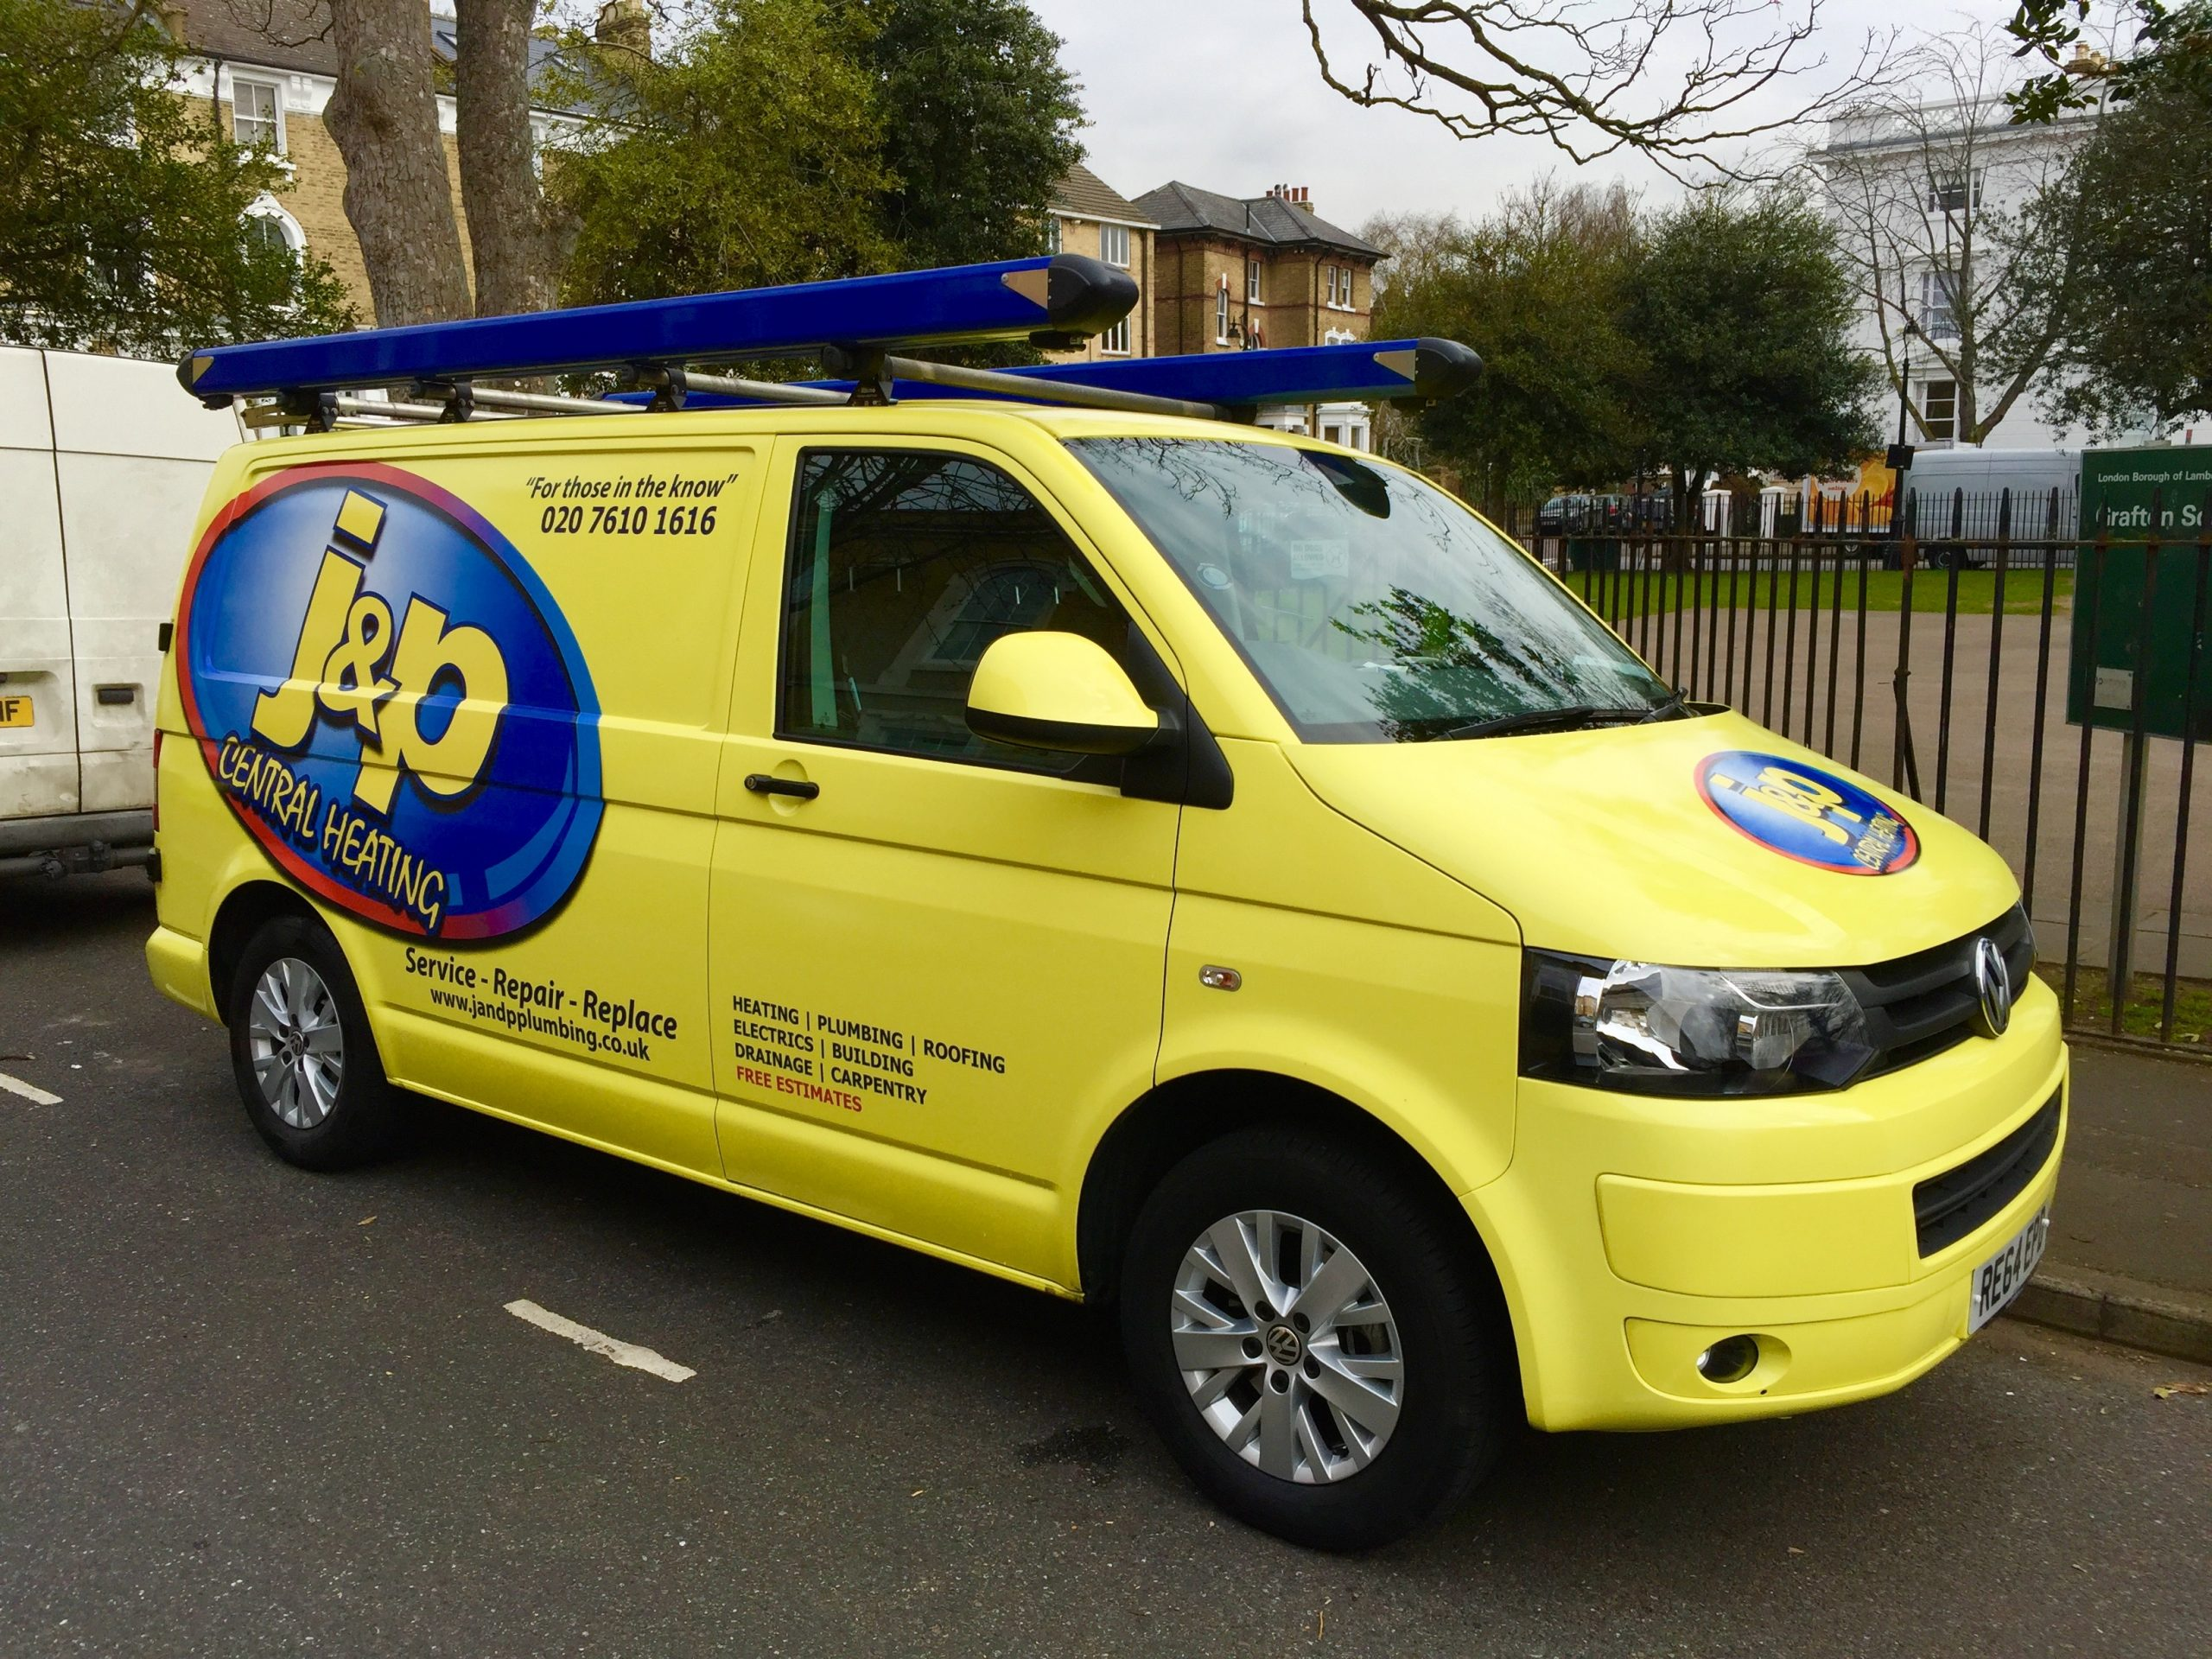 J&P are unique from any other local plumbing companies because we offer premium services at affordable prices. With hundreds of loyal customers, we want you to know that we will never hide costs or charge you more than the work completed.